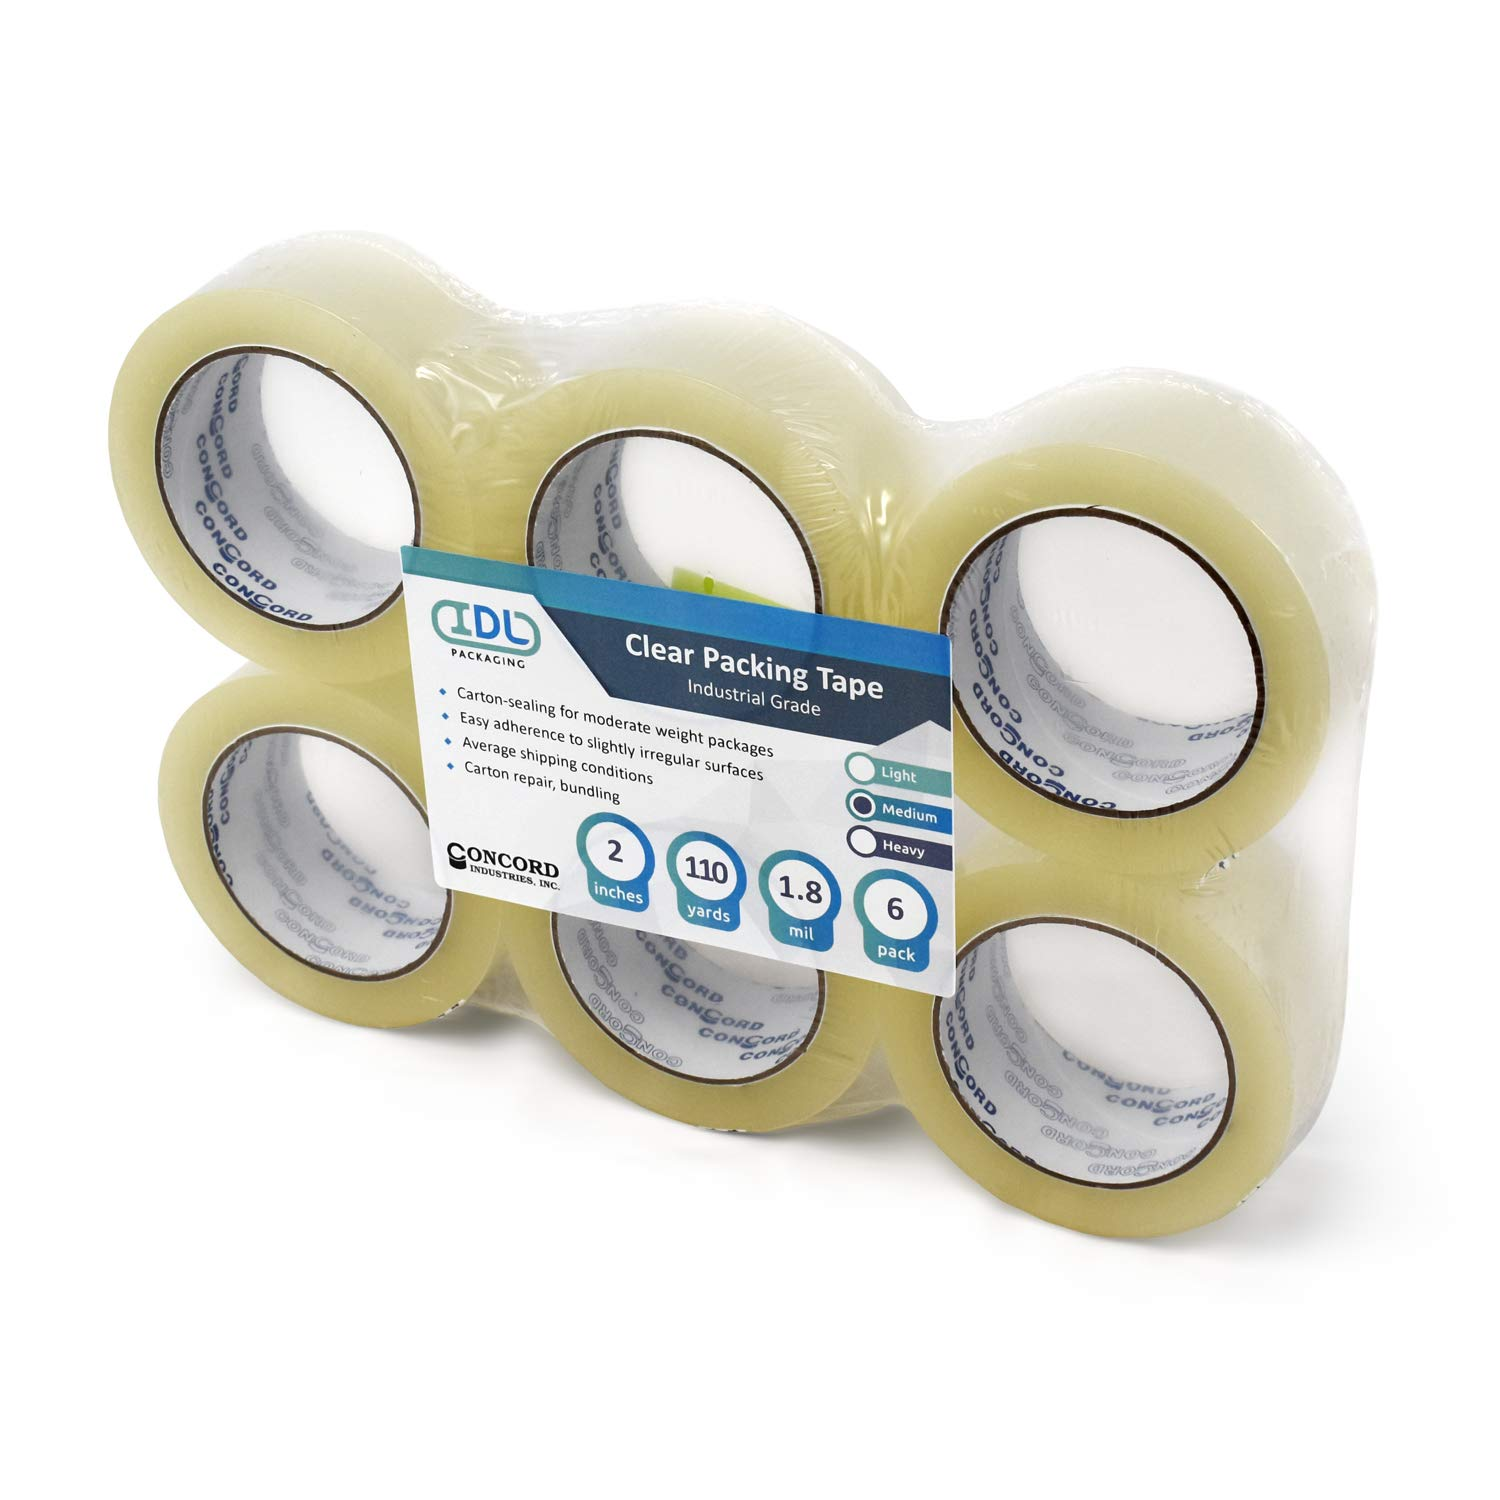 IDL Packaging Concord Packing Tape - 2